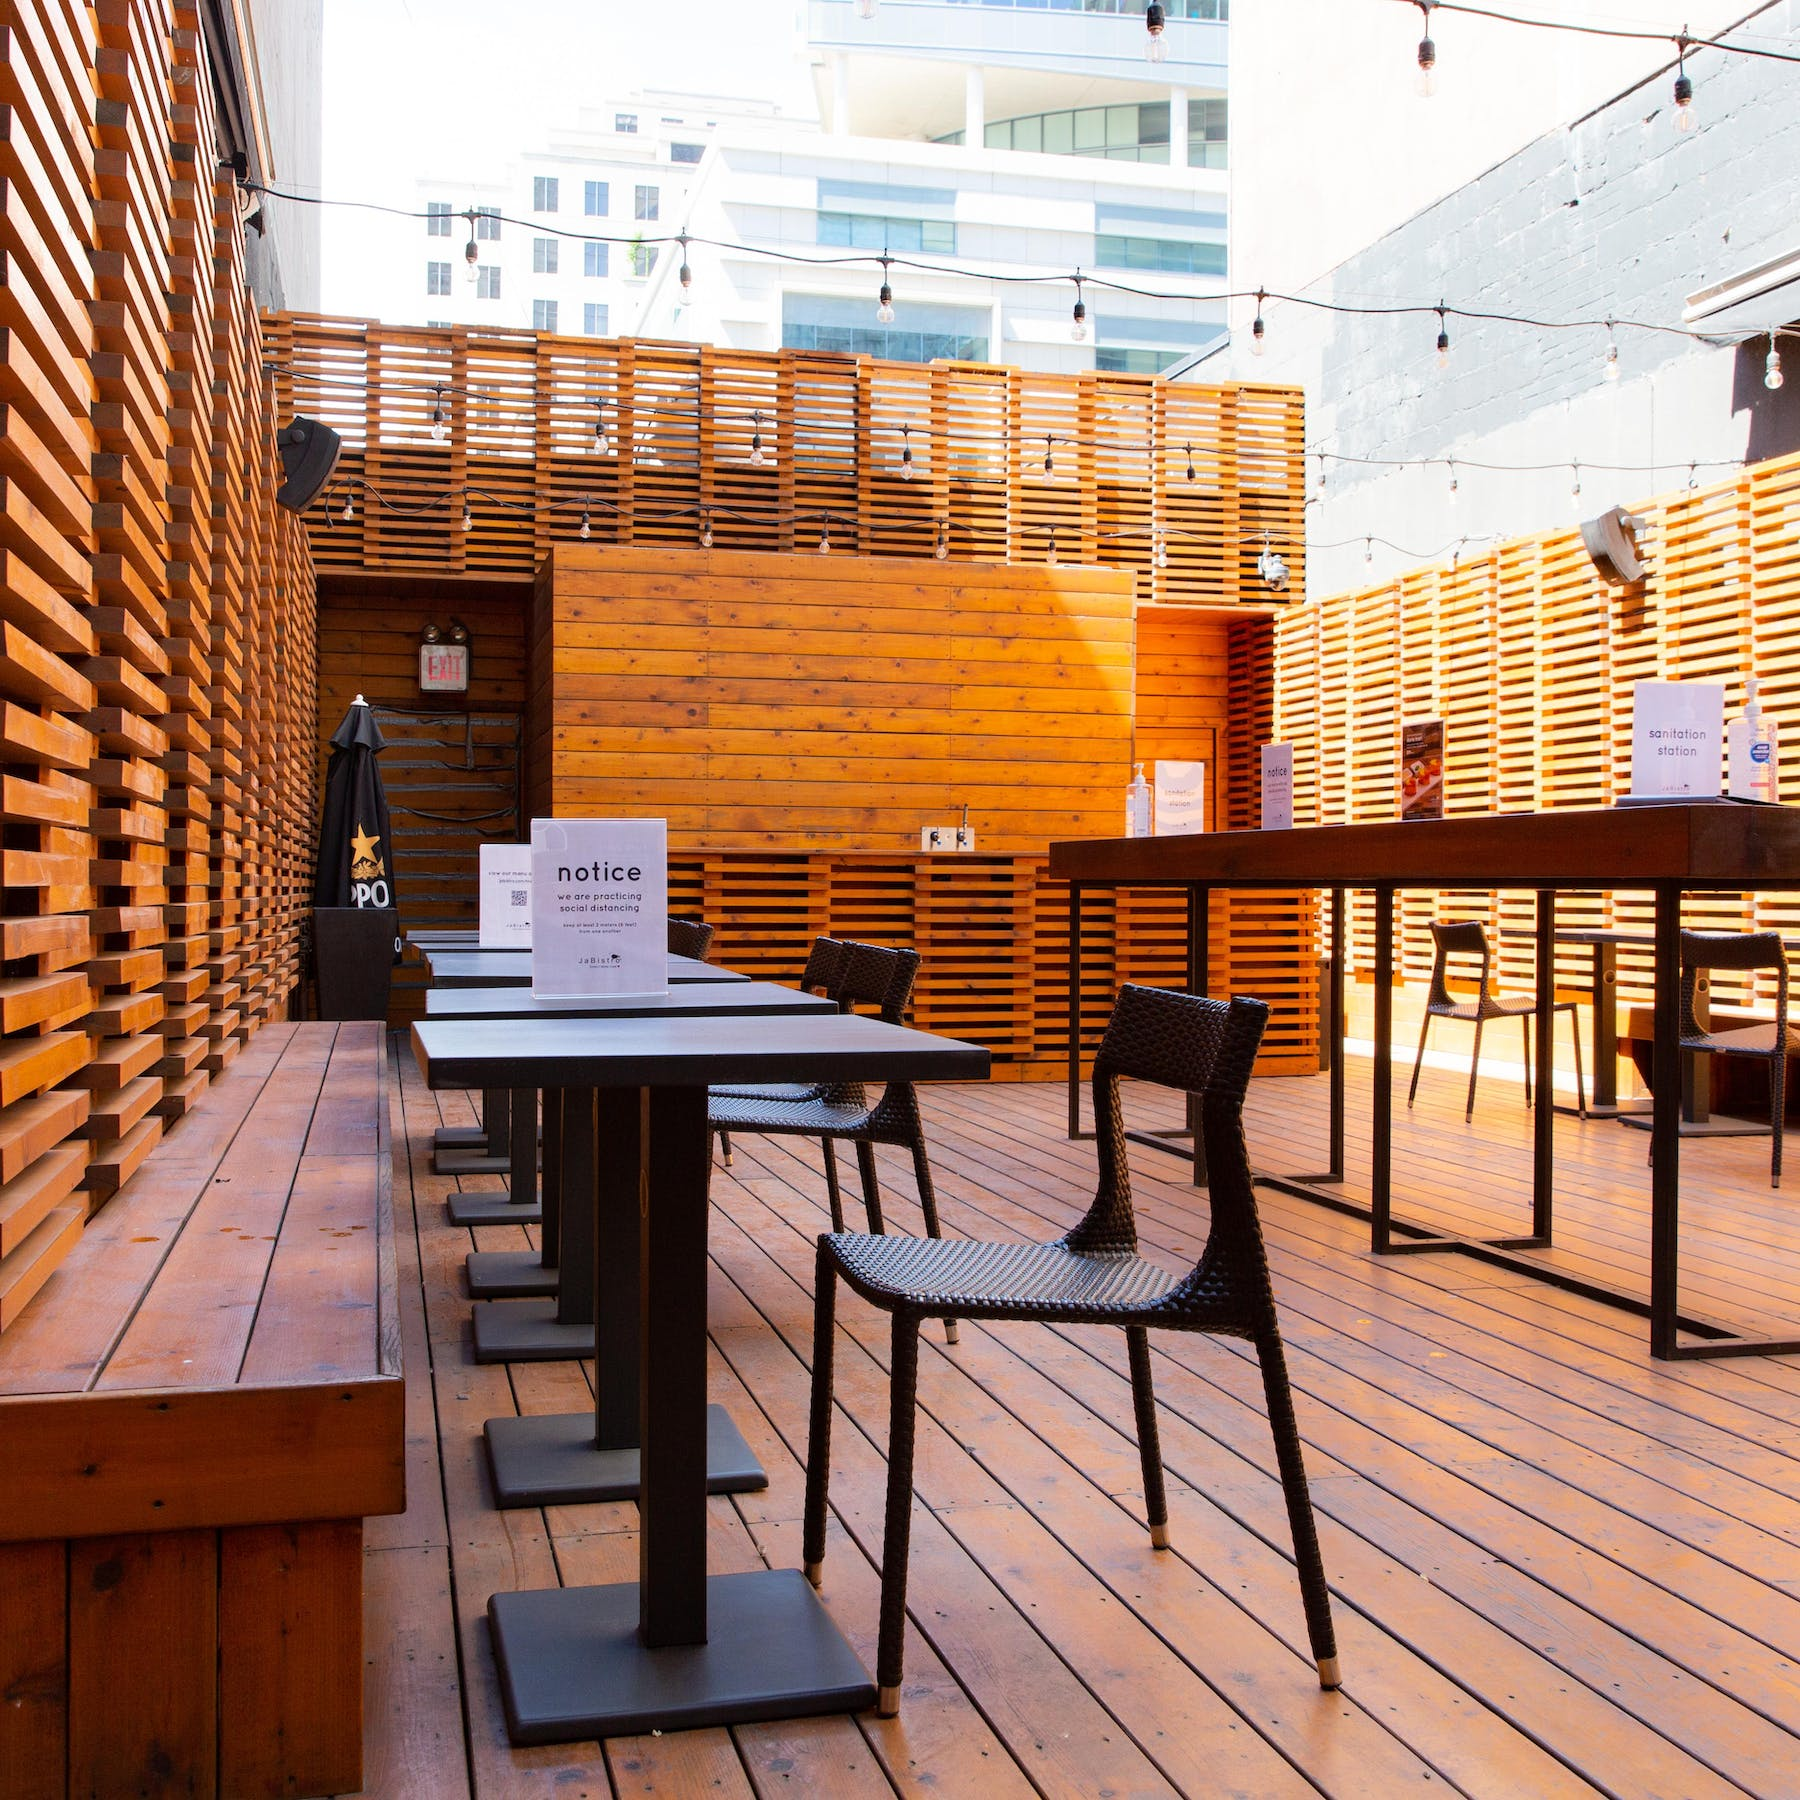 an image of a rooftop patio with seats and tables